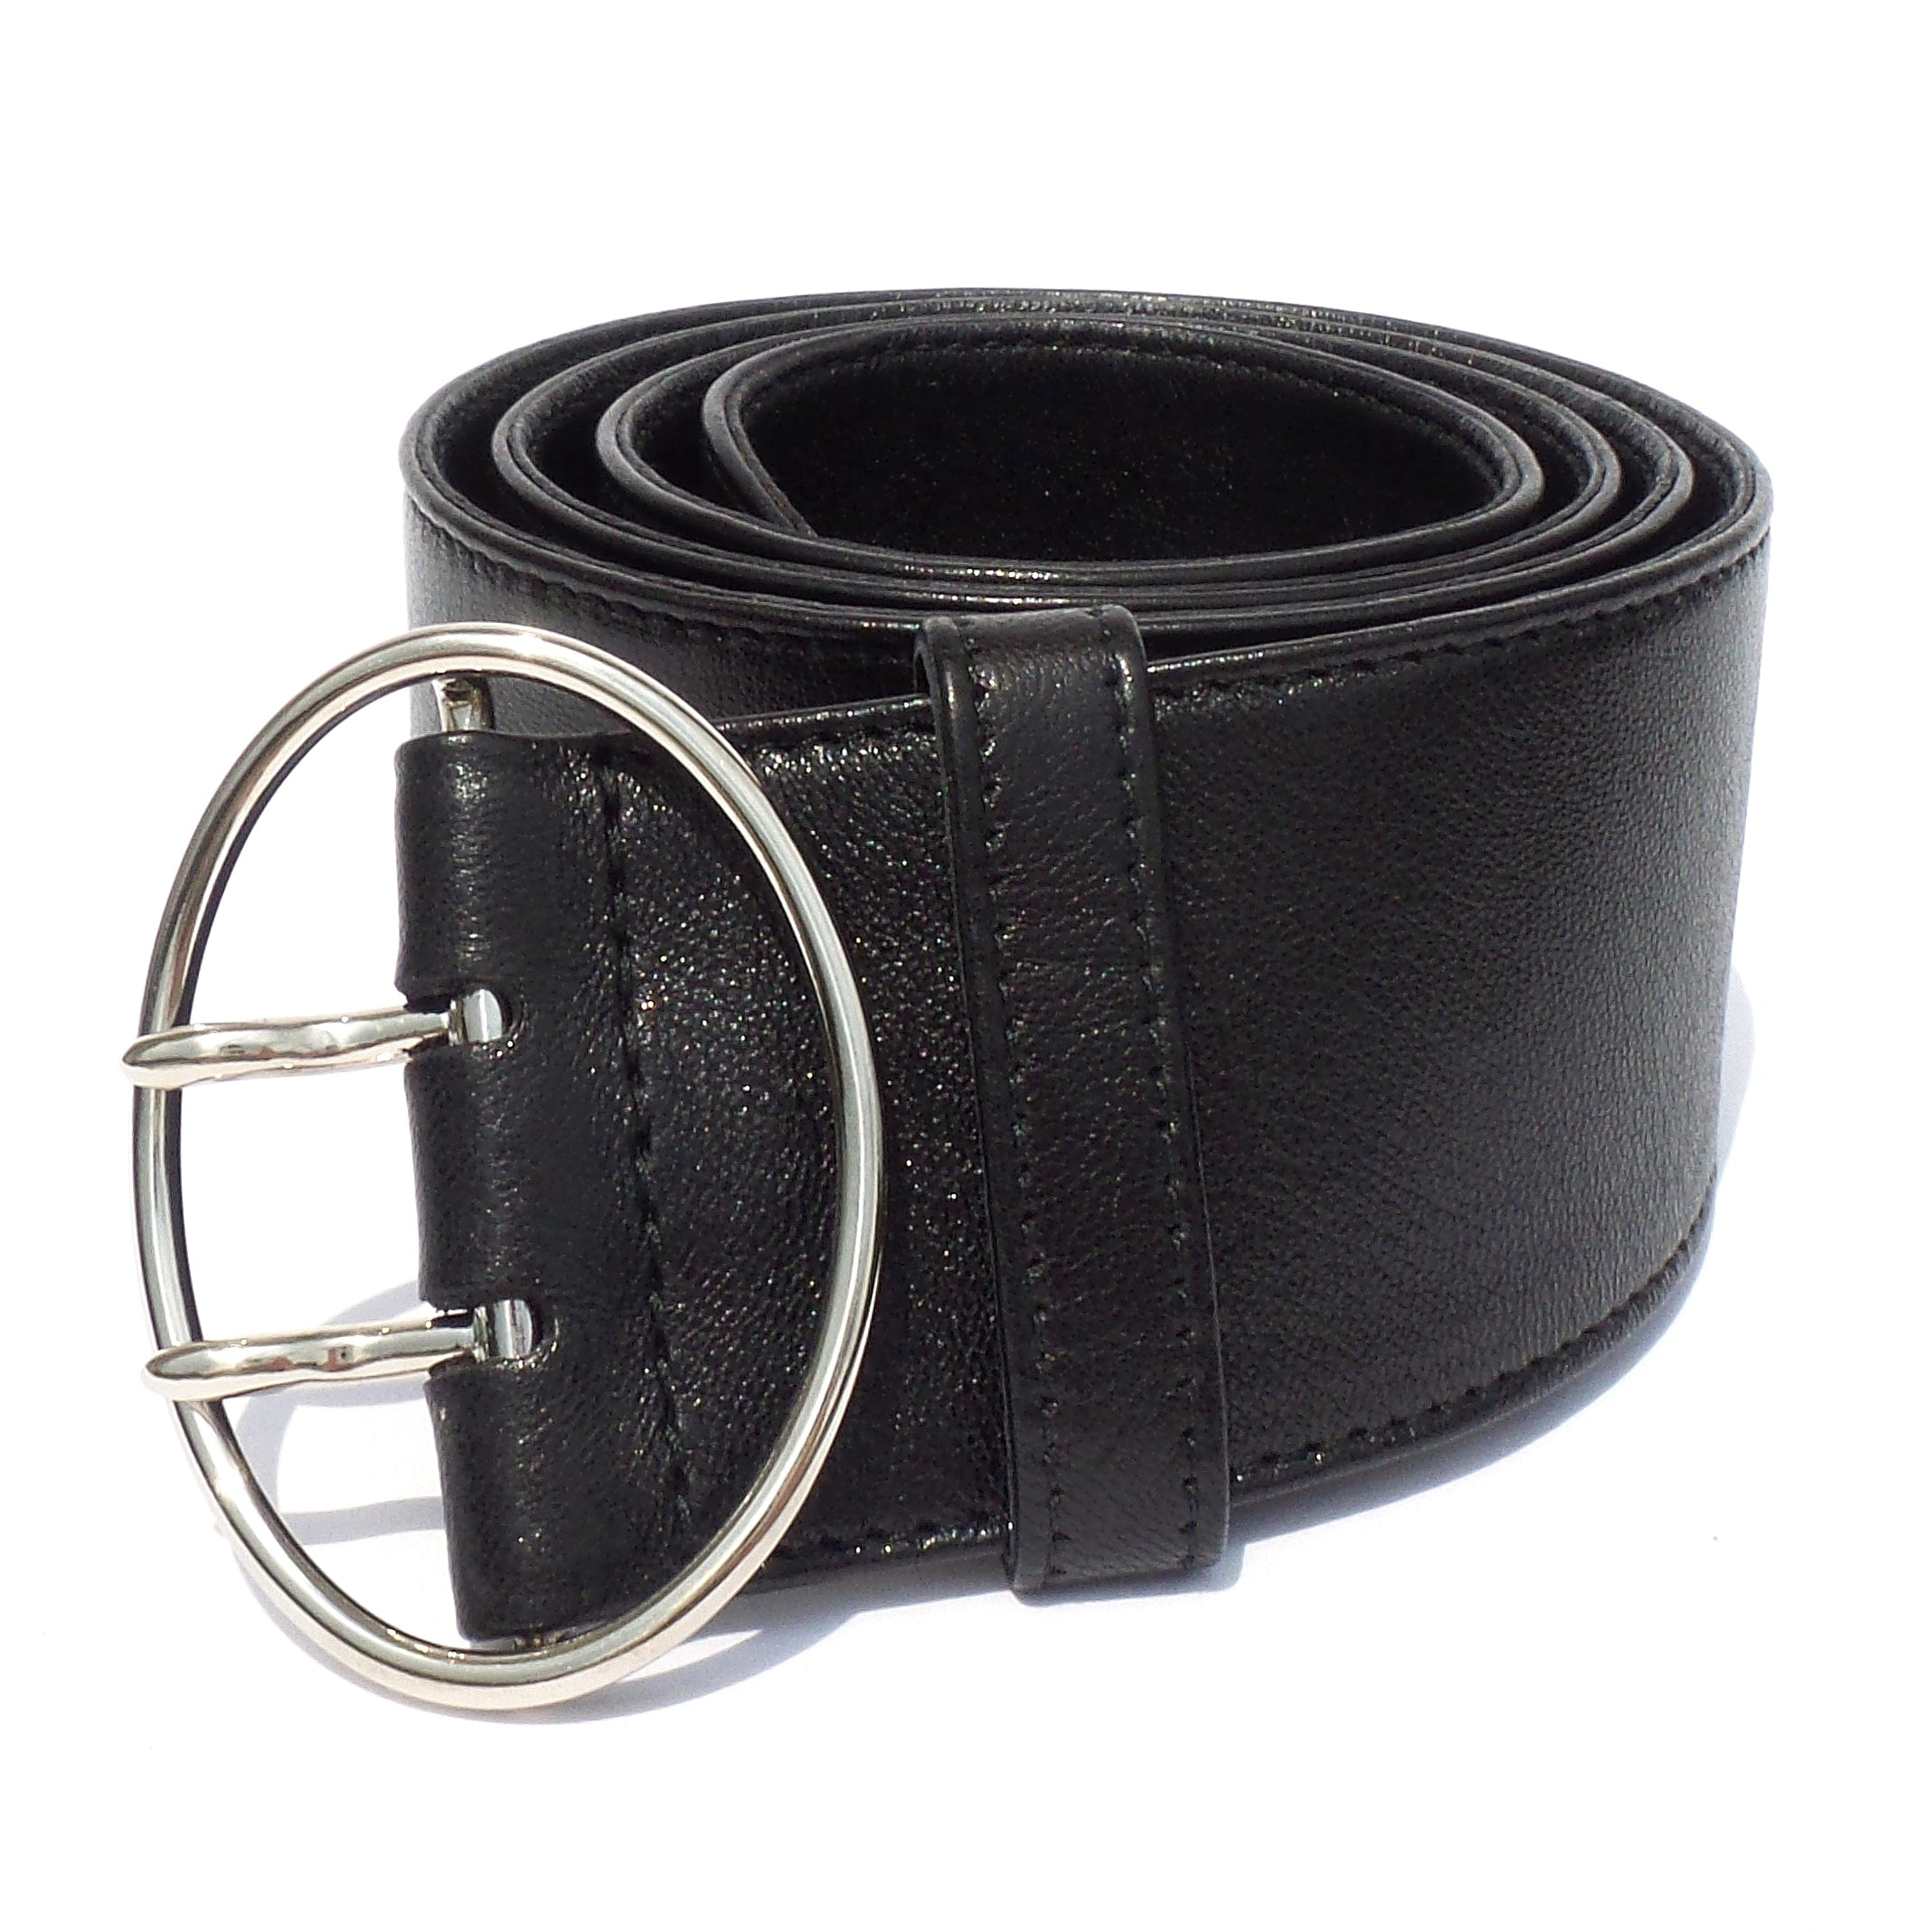 'Sold' PRADA 1C5903 Black Leather Silver Oval Double Prong Buckle Wide Belt 85cm 34 EC